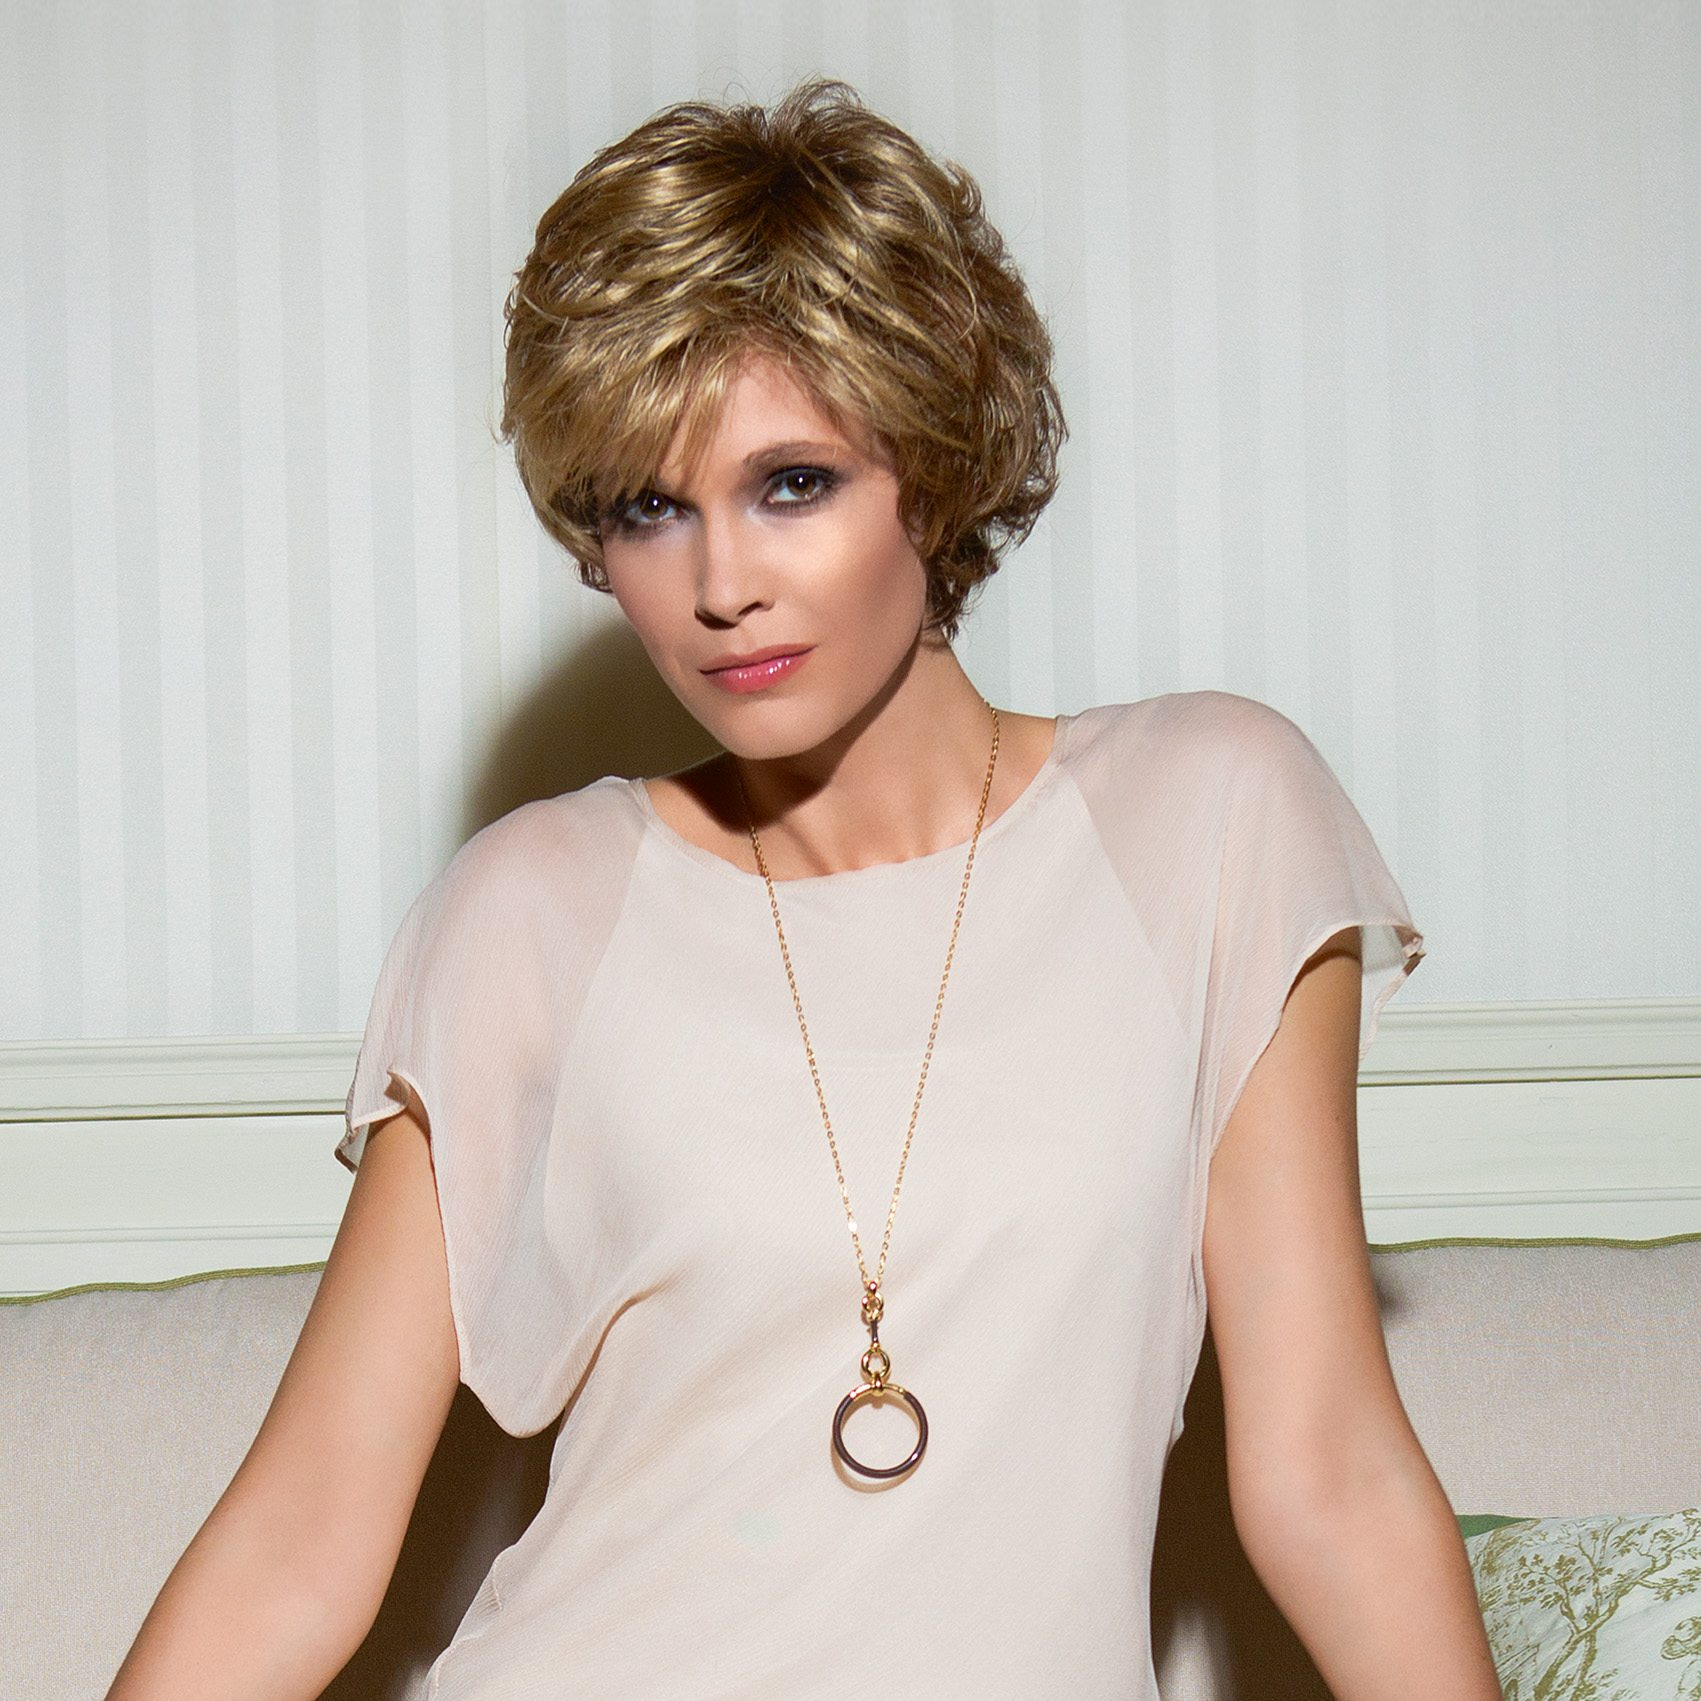 Affair Wig Ellen Wille Hair Society Collection - image Charme-Wig-Hair-Society-1 on https://purewigs.com